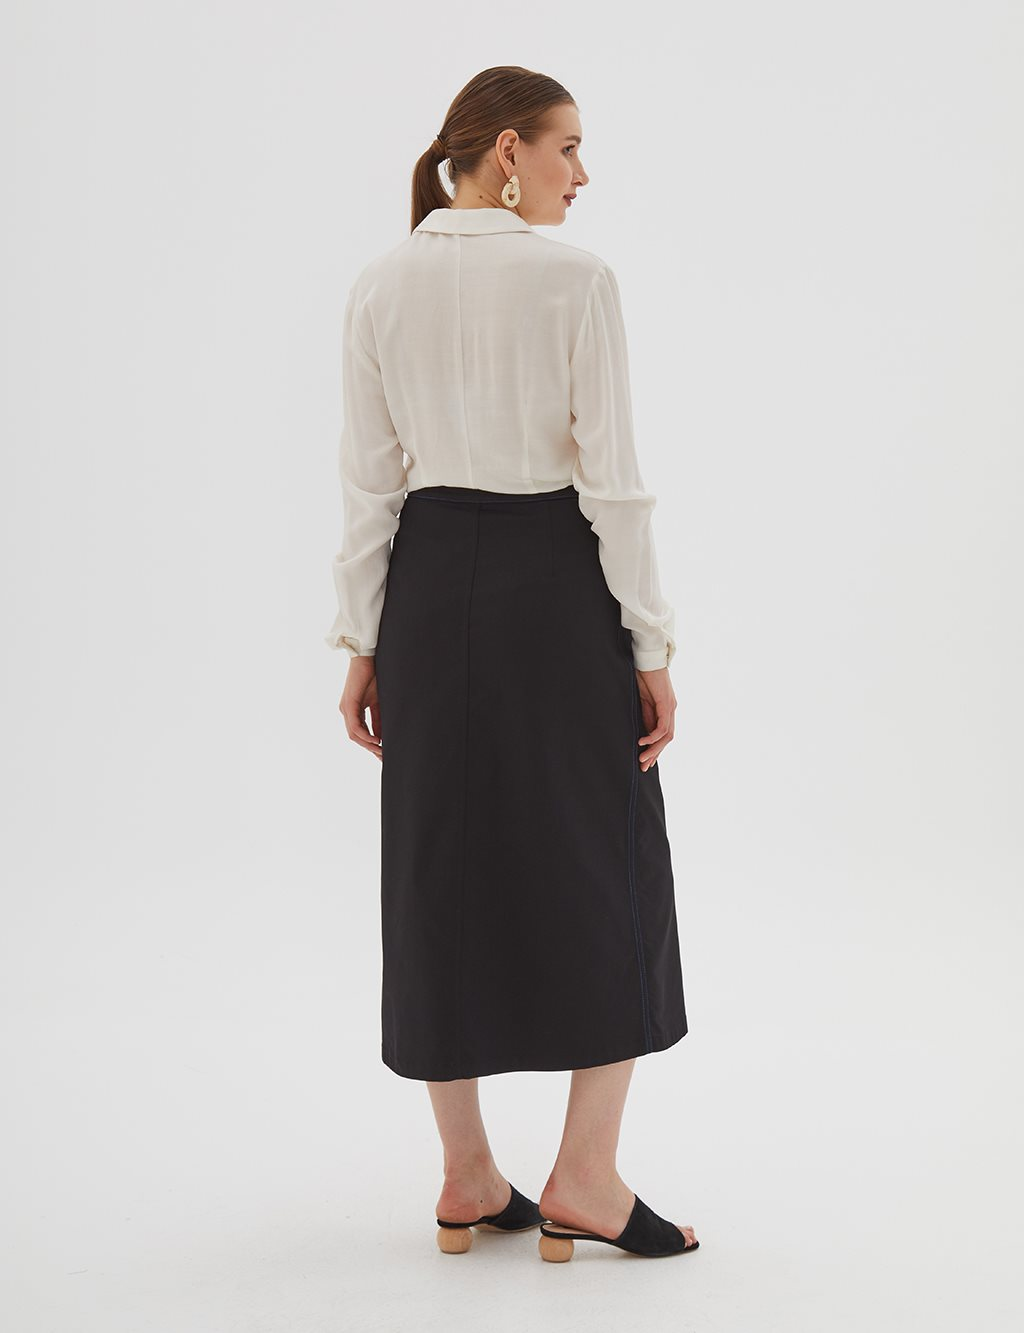 Canvas Skirt With Button Detailed B20 12022 Black